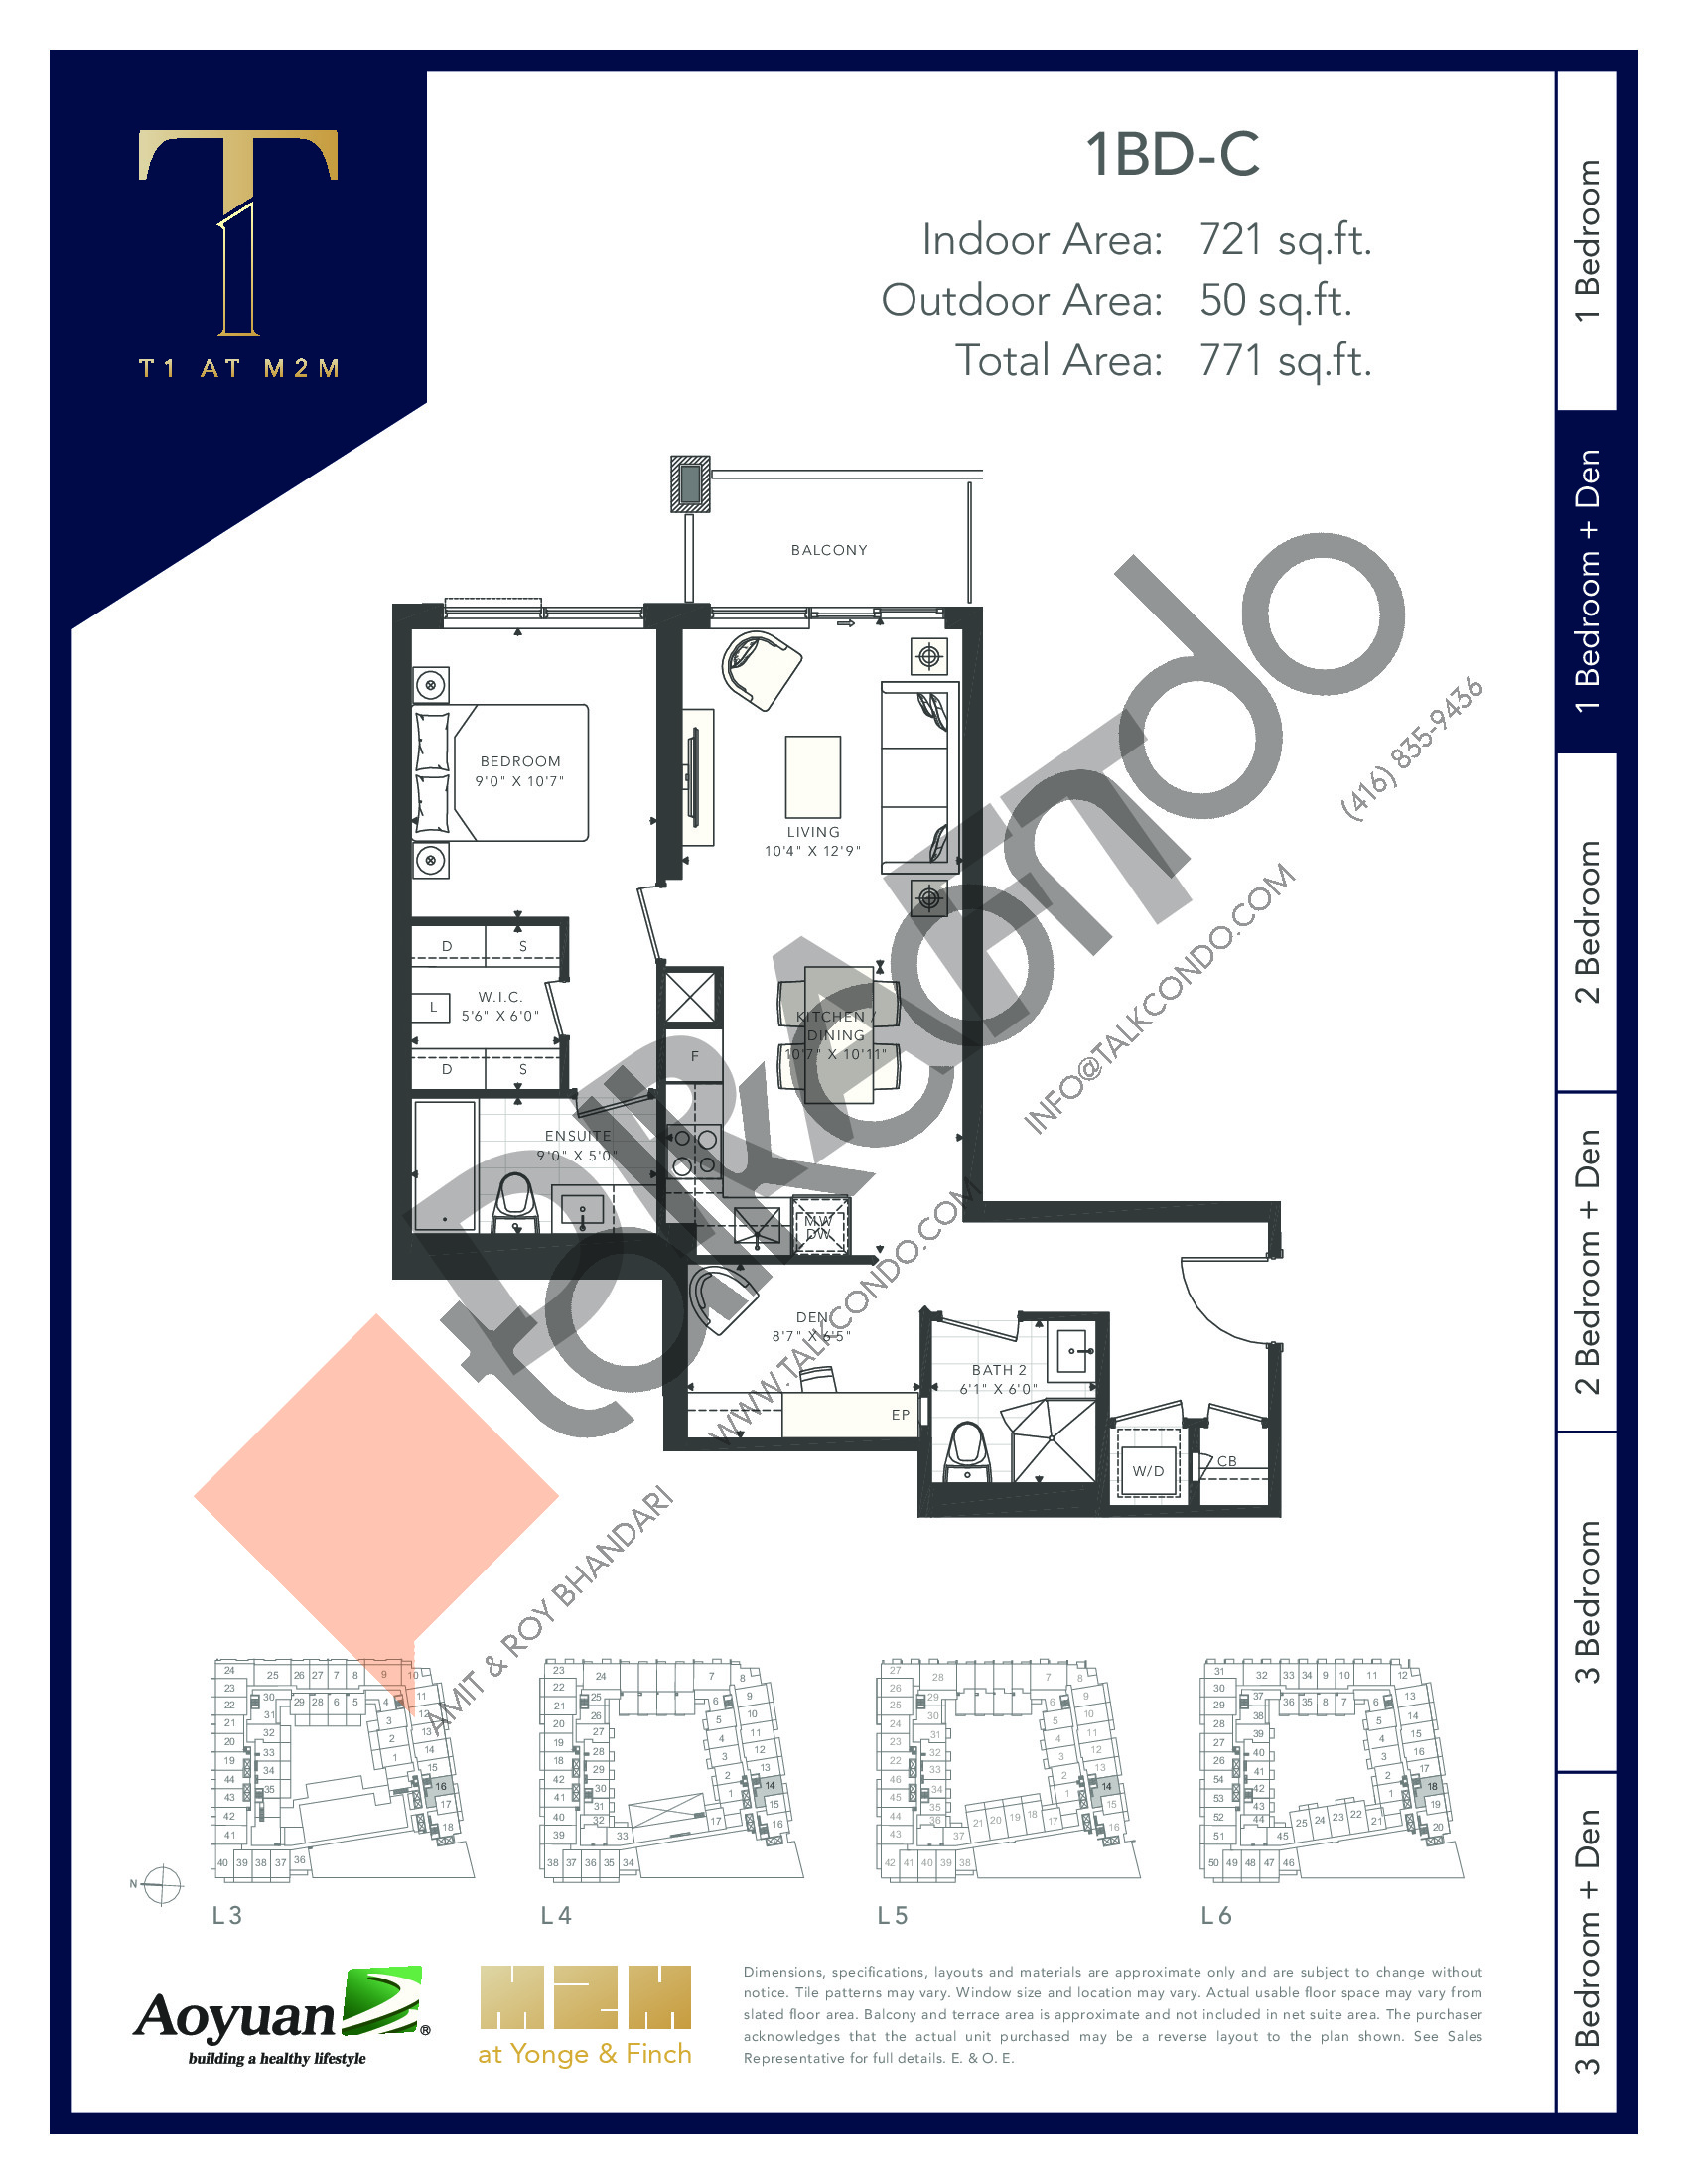 1BD-C (Podium) Floor Plan at T1 at M2M Condos - 721 sq.ft